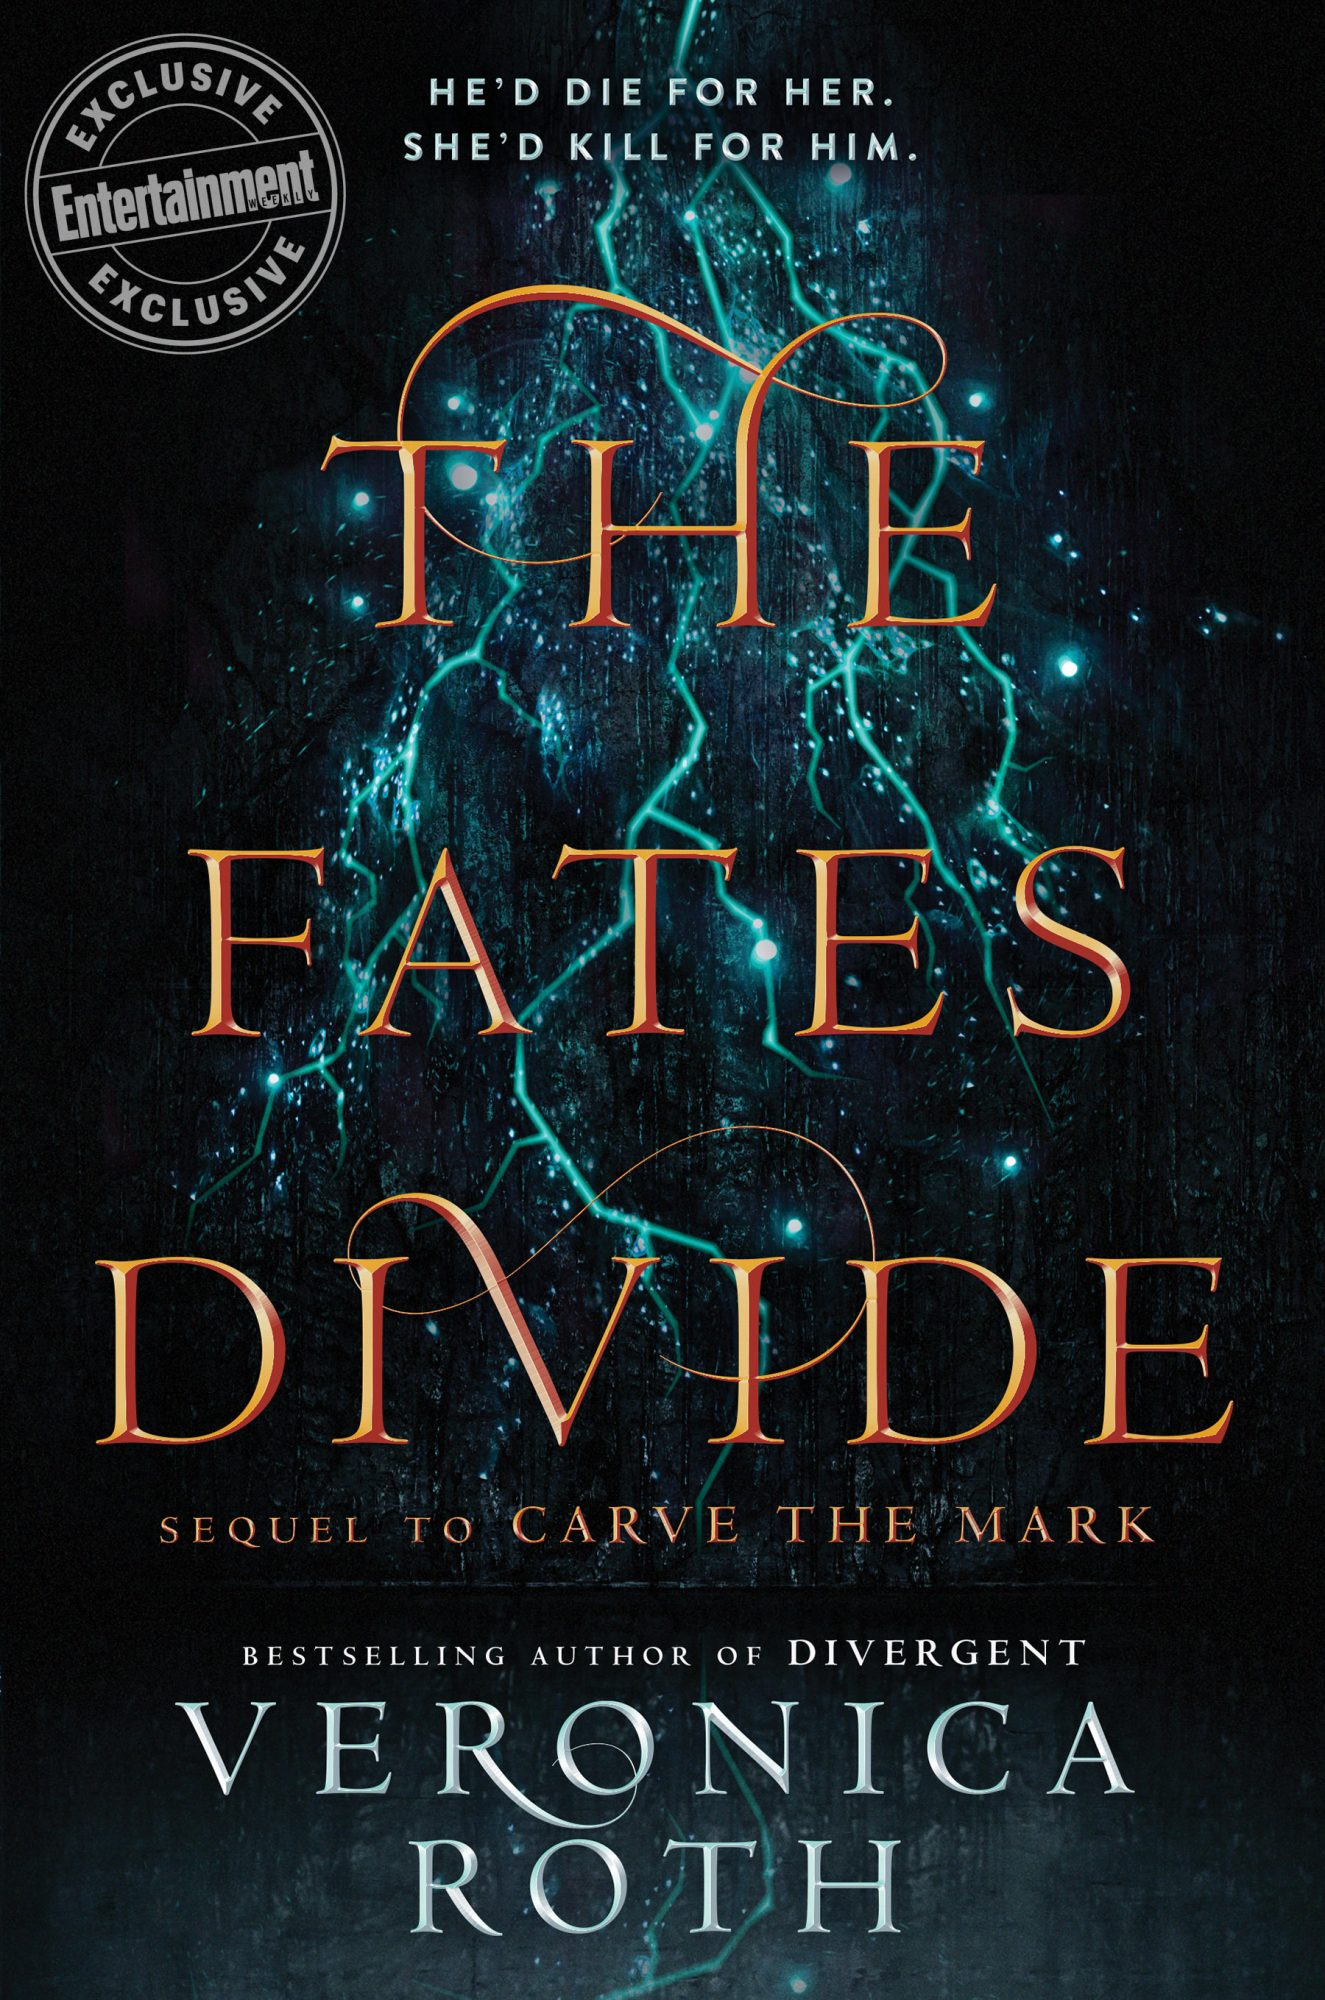 (WATERMARKED) The Fates Divide